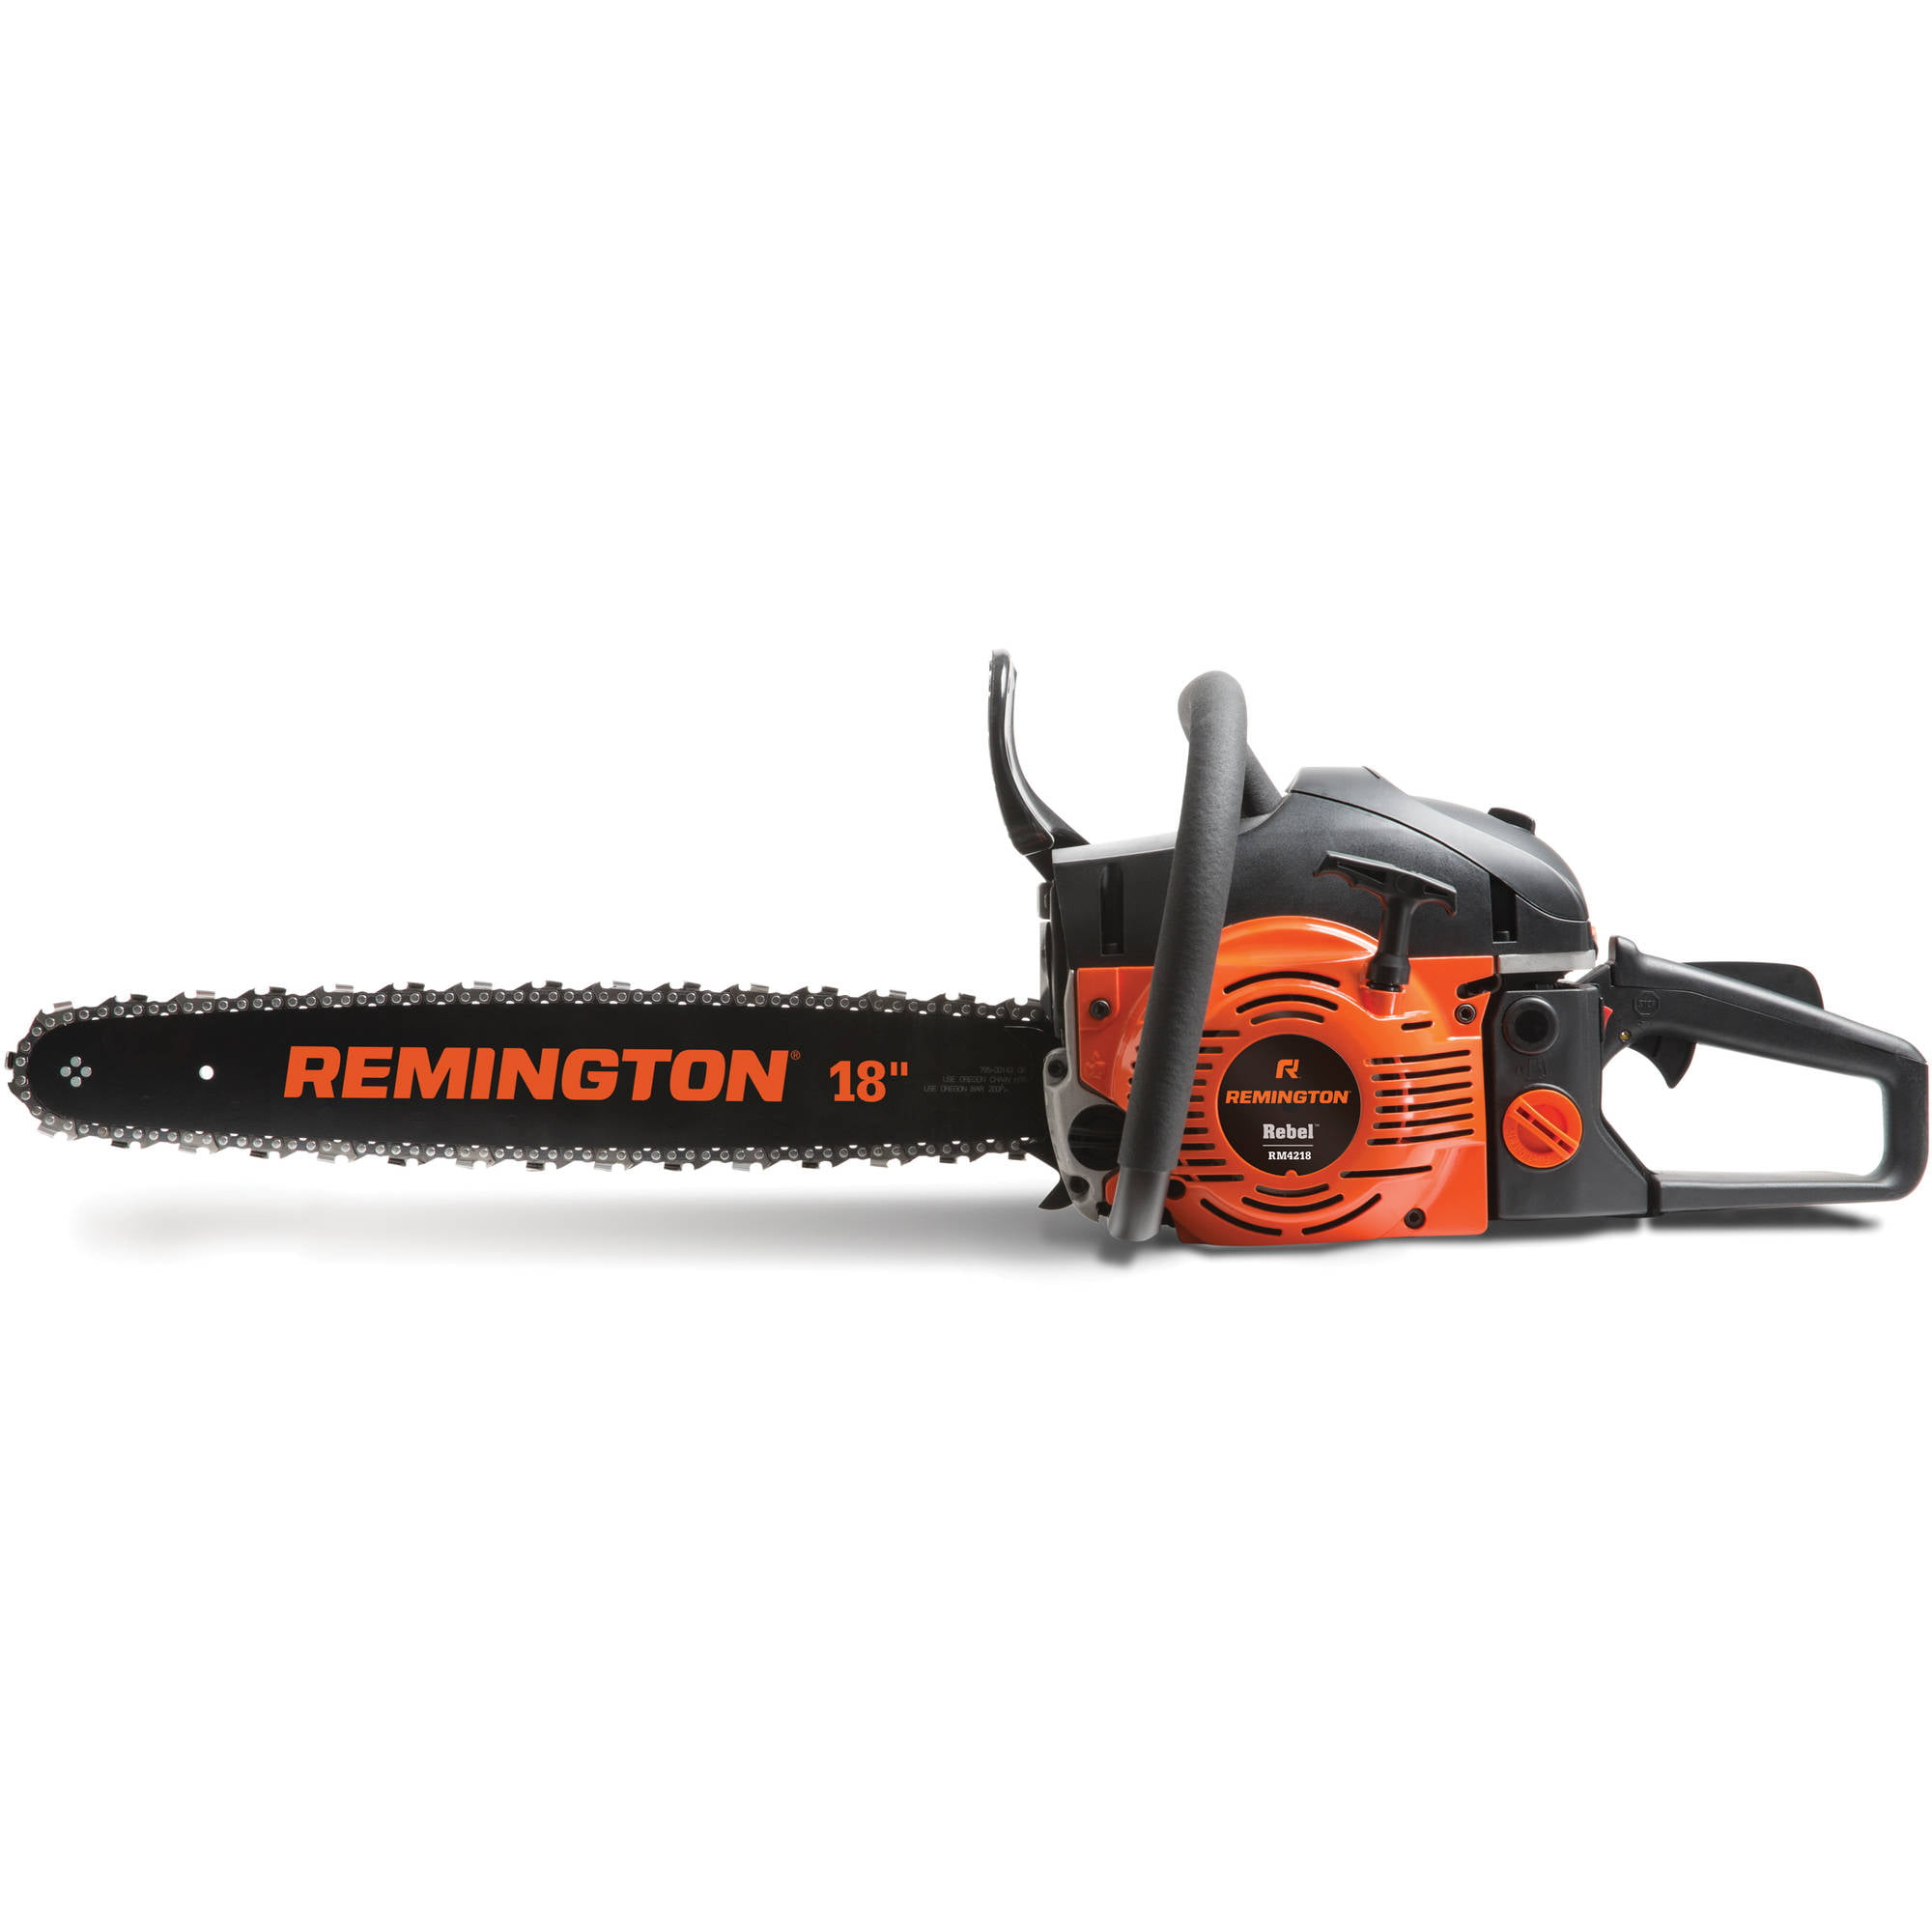 "Remington Rebel 18"" 42cc Gas Chain Saw by MTD Products, Inc"